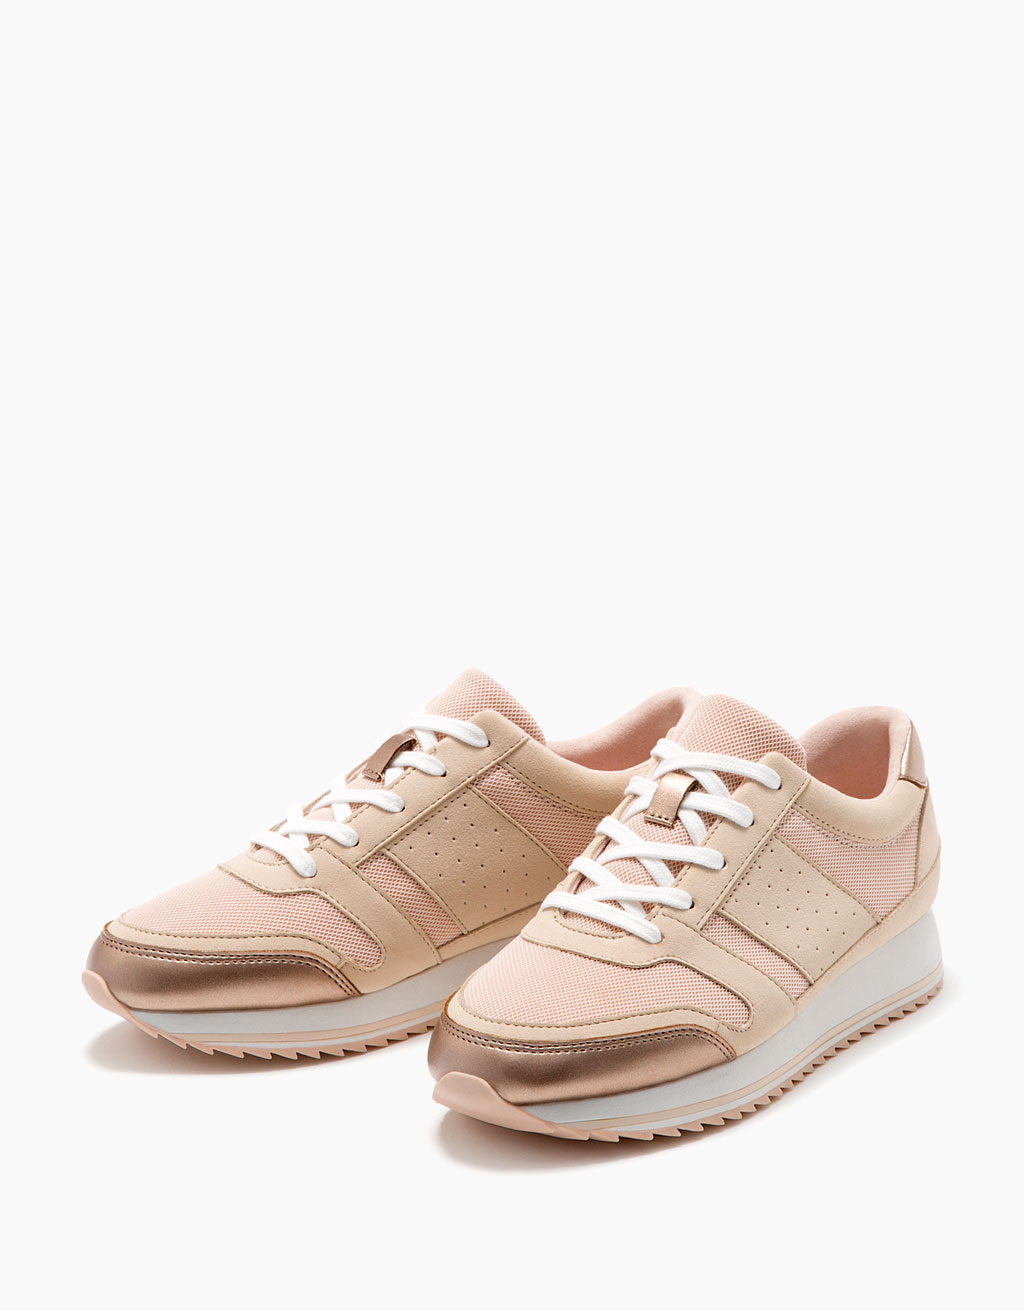 Lace-up sneakers with metallic detail